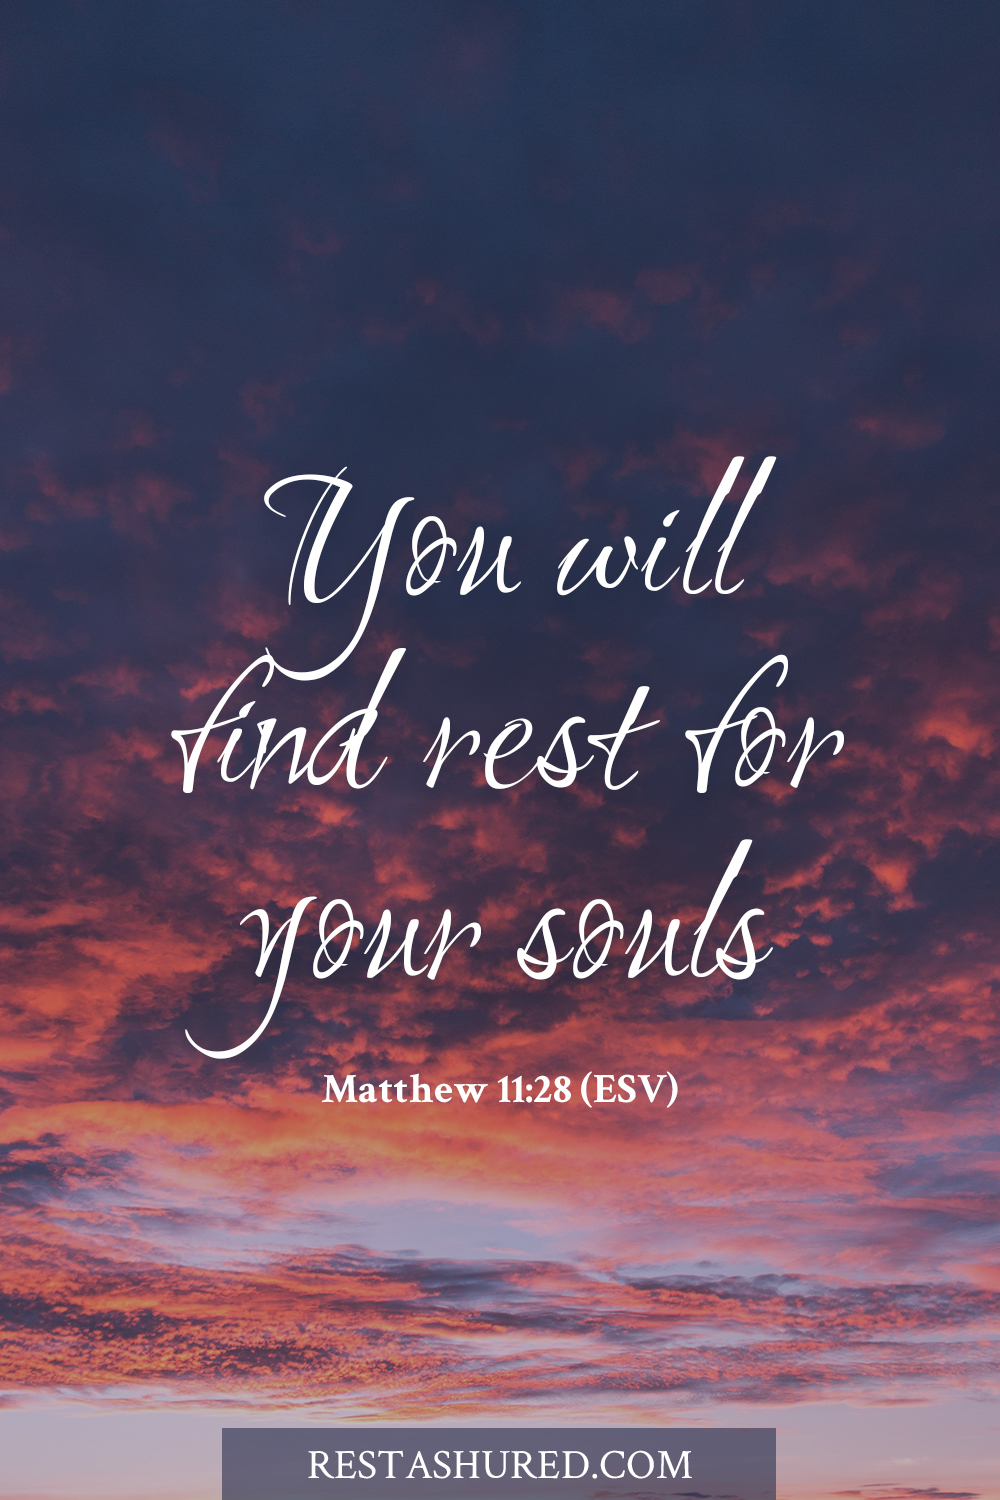 Matthew 11:28 - Take my yoke upon you, and learn from me, for I am gentle and lowly in heart, and you will find rest for your souls. For my yoke is easy, and my burden is light.